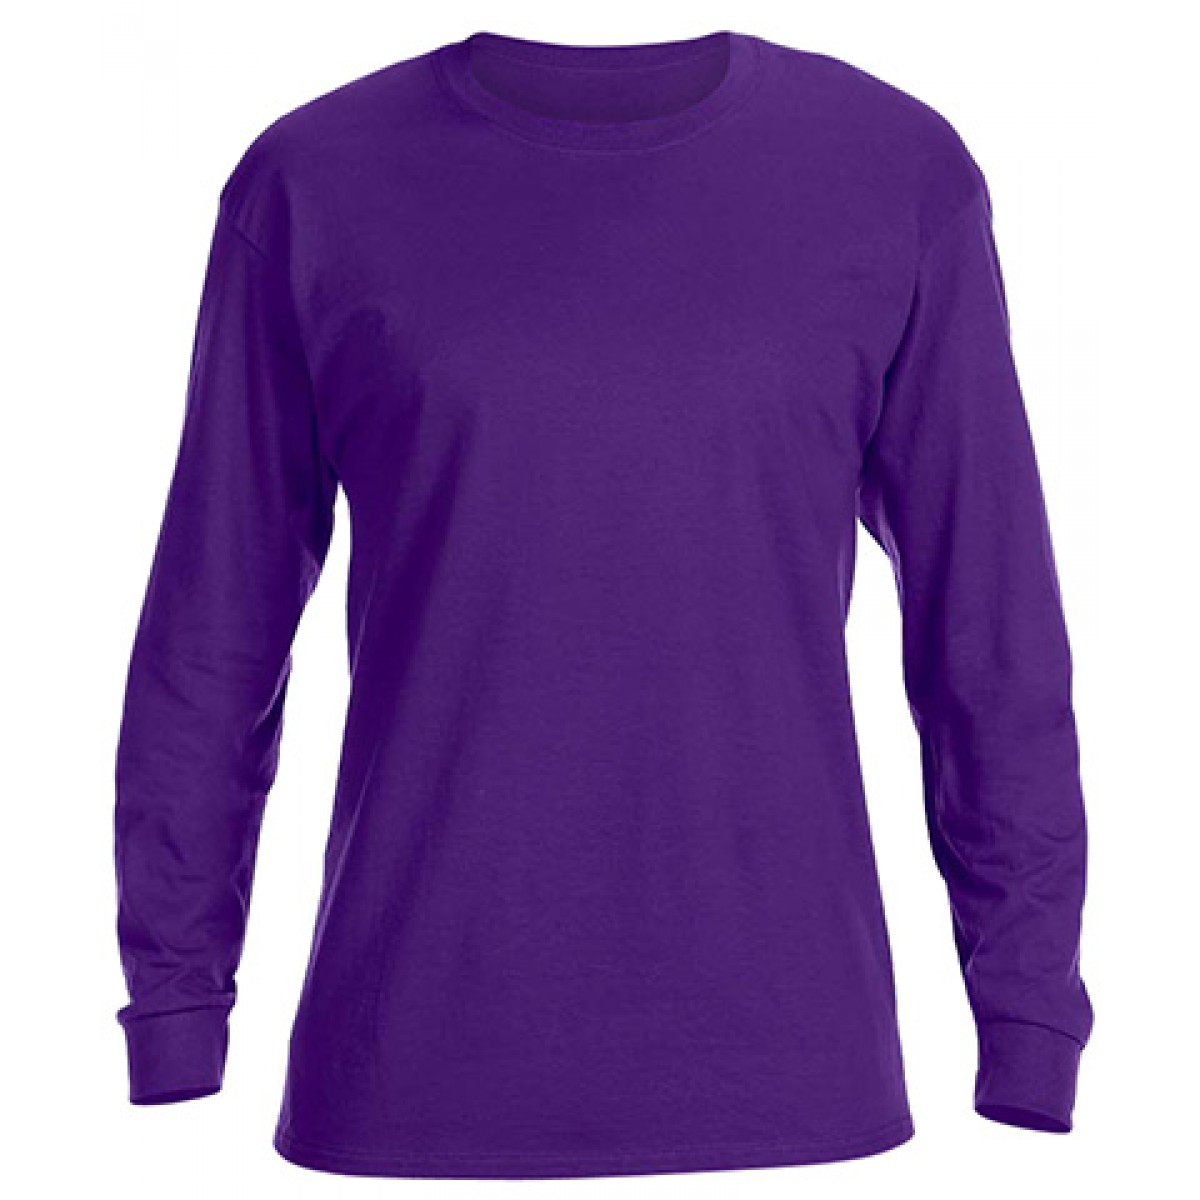 Basic Long Sleeve Crew Neck -Purple-L